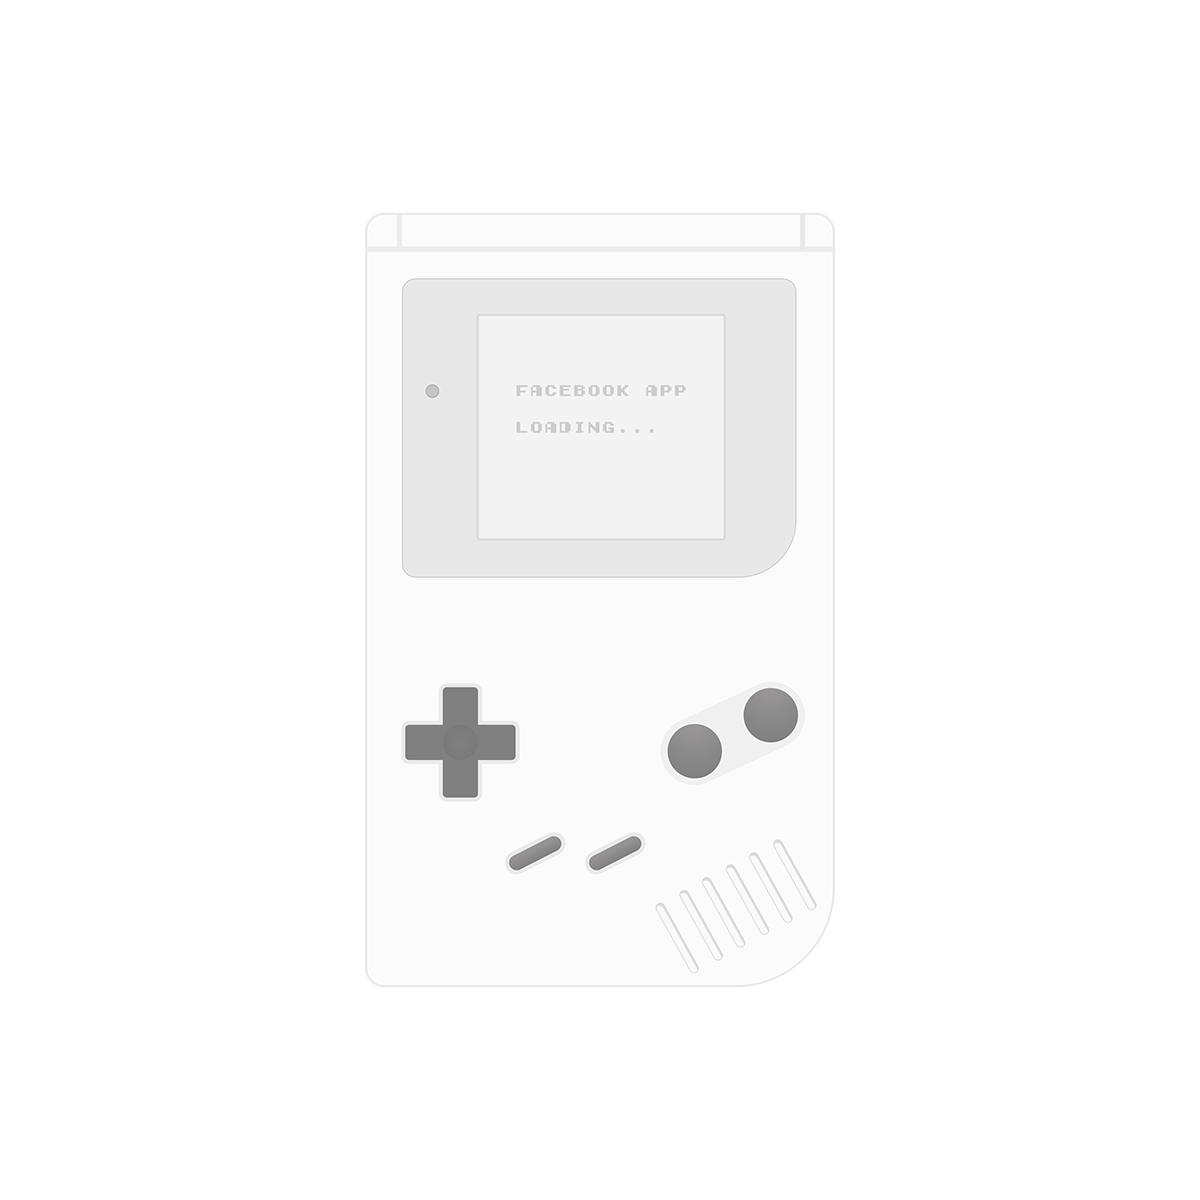 gameboy Nintendo UI template sketch classic interfaces